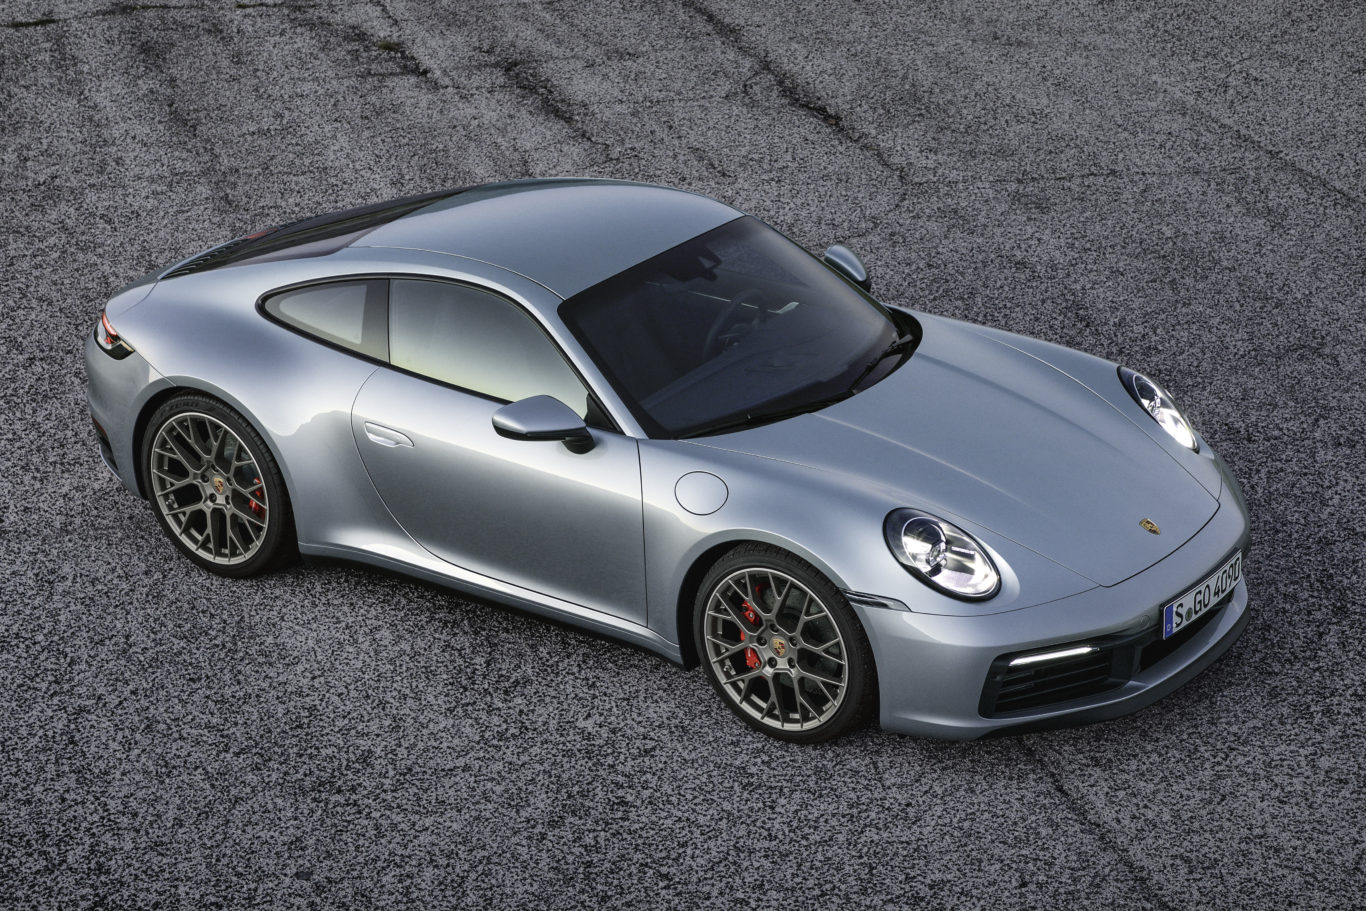 The new 911 has been completely overhauled to make it faster and more engaging than before